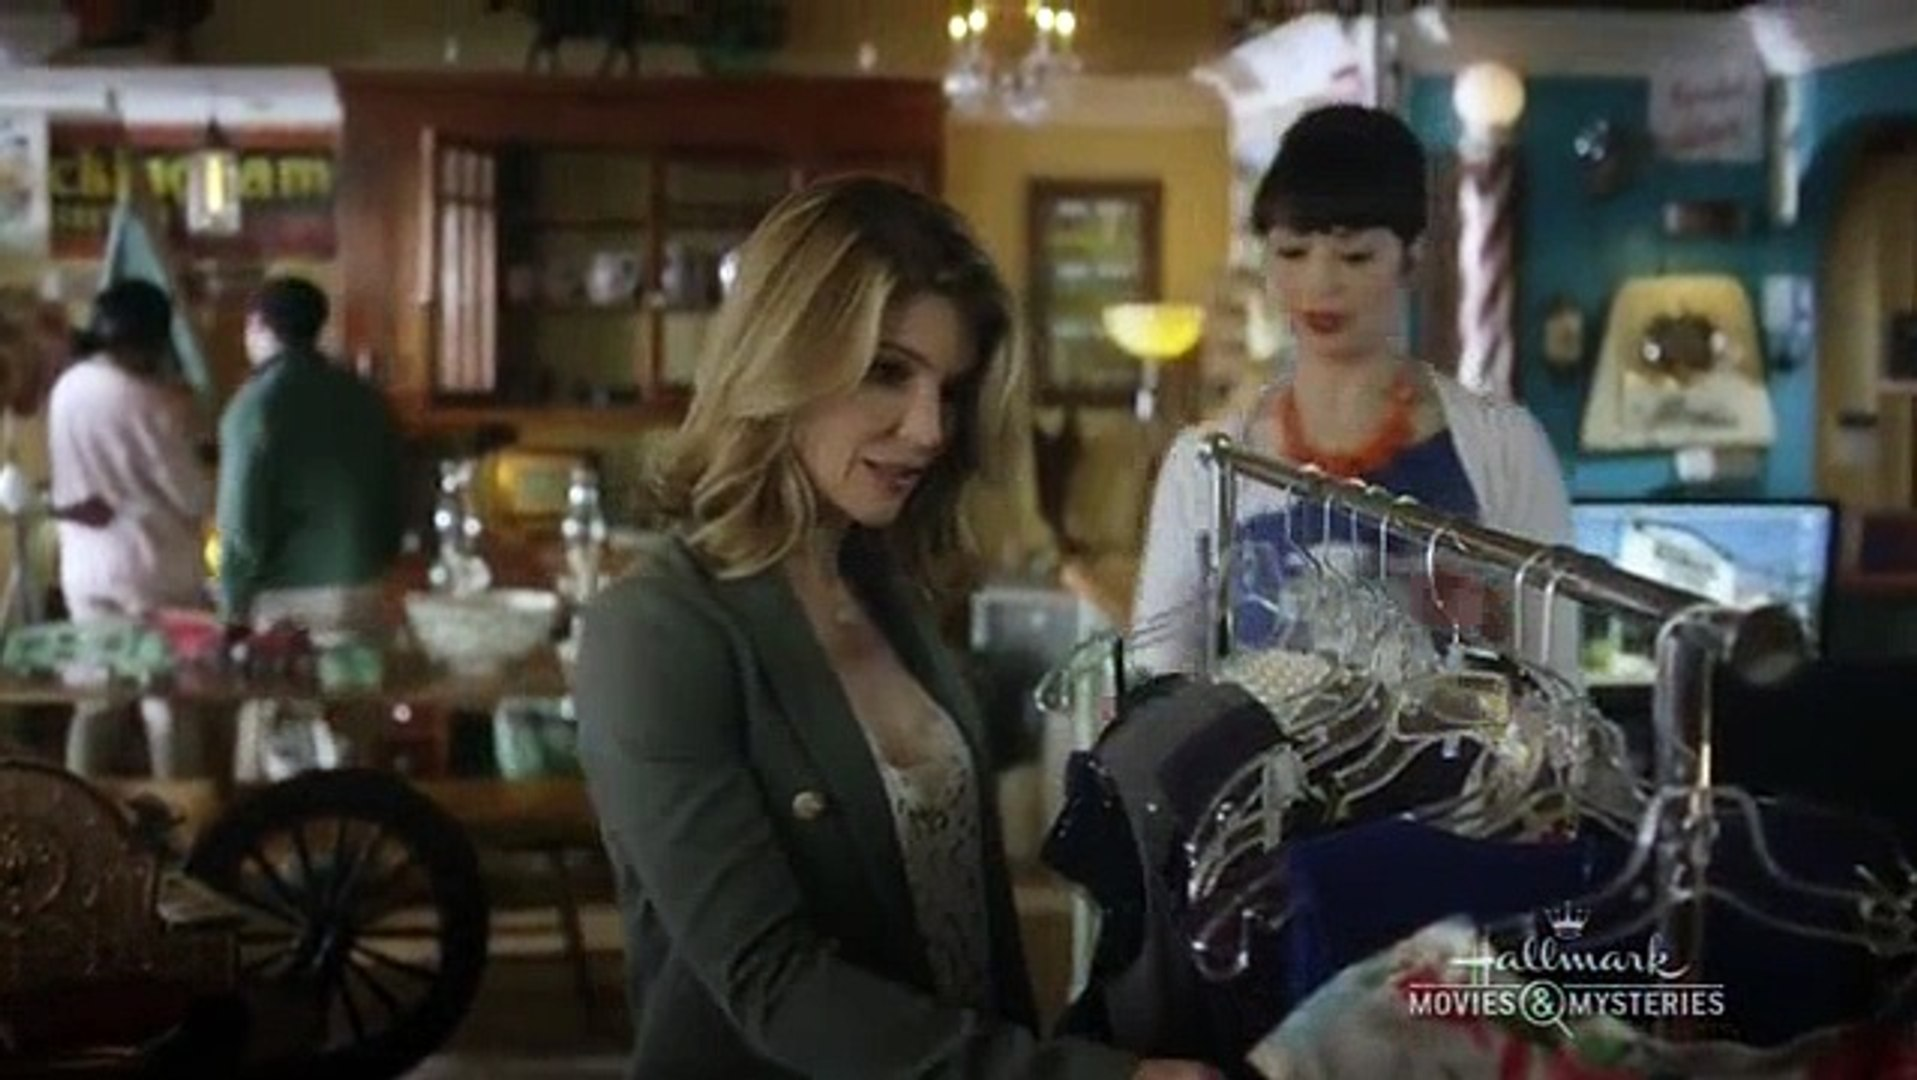 Garage Sale Mystery The Beach garage sale mystery s01e09 murder most medieval vol. 02